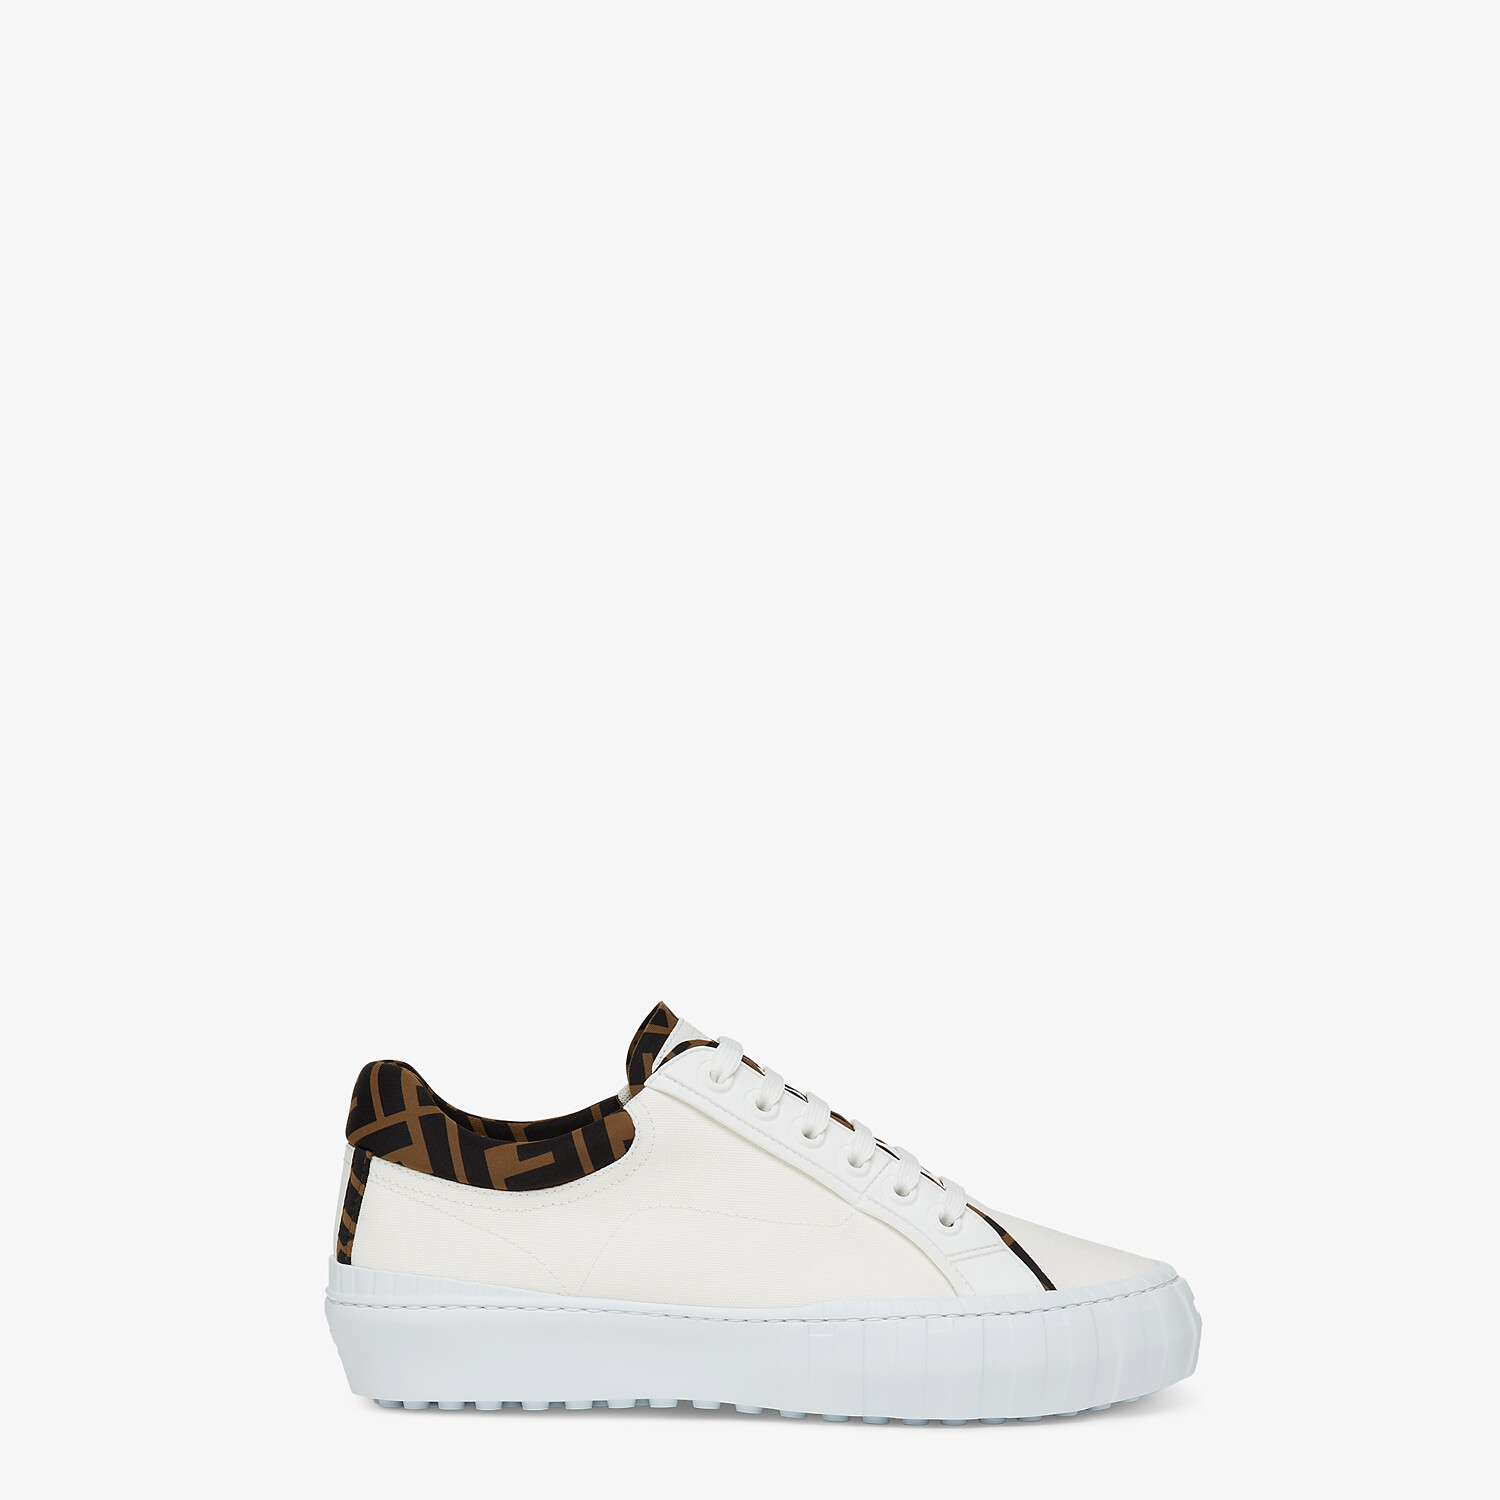 FENDI SNEAKERS - White canvas low-tops - view 1 detail